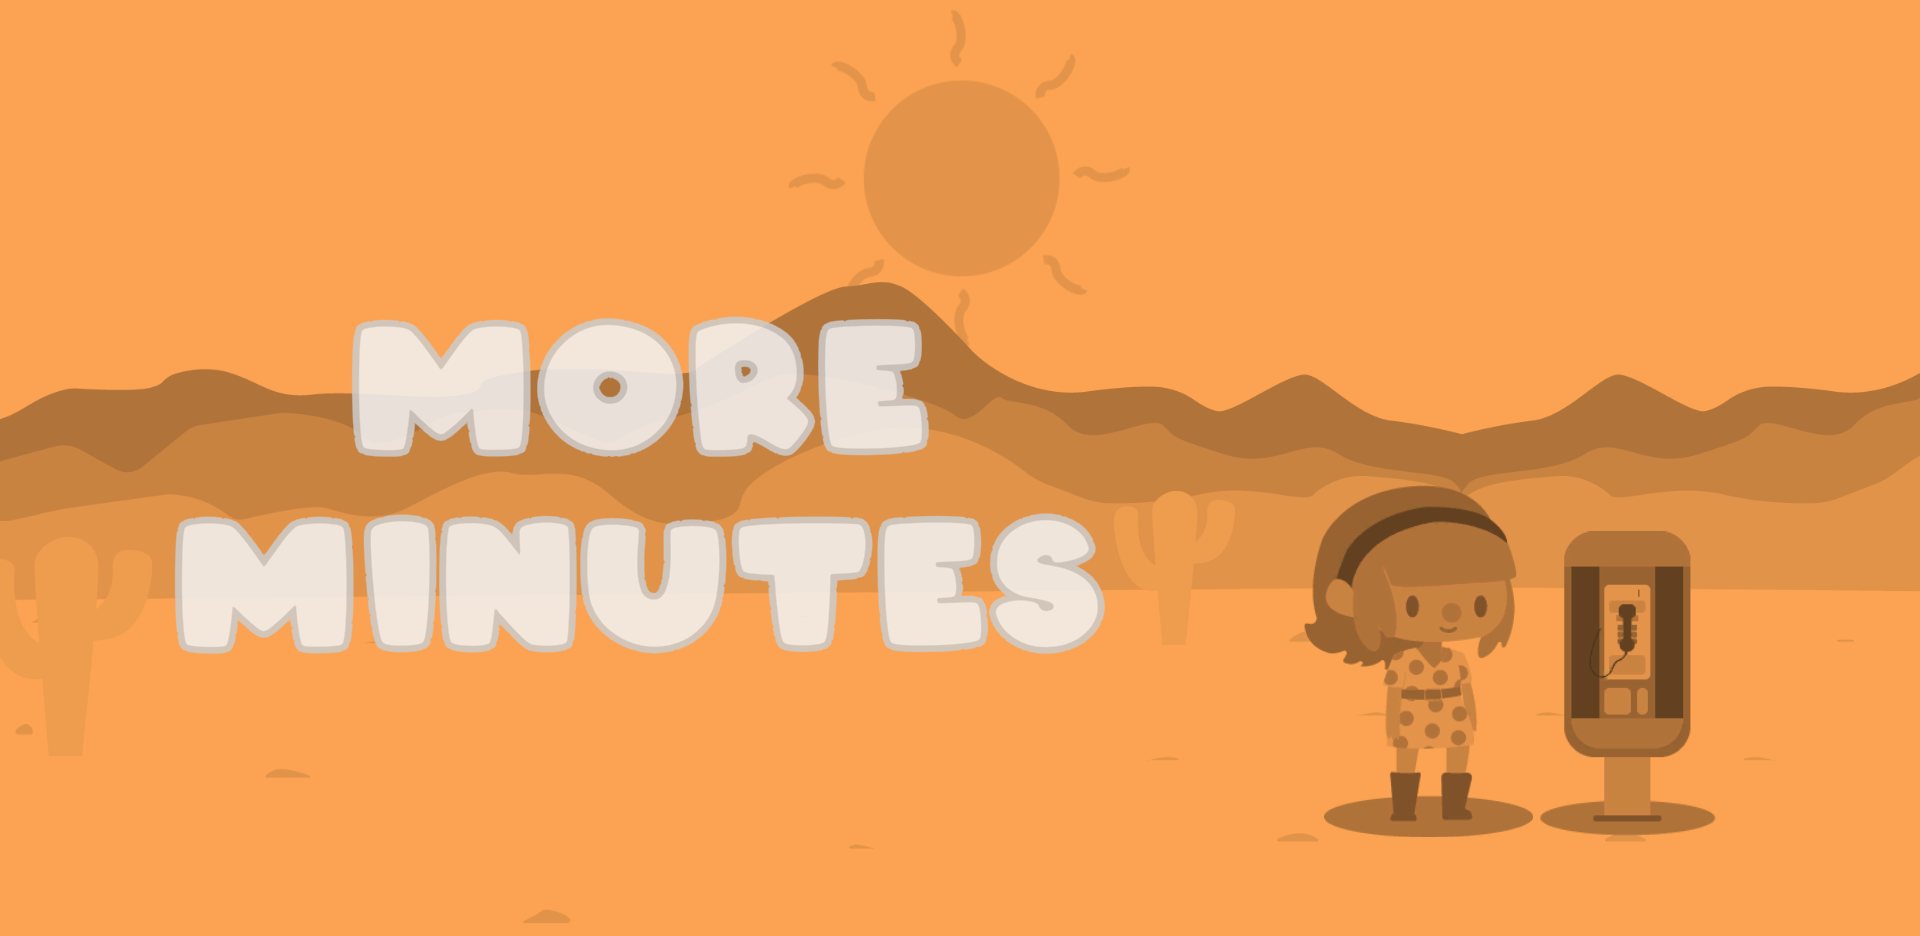 More Minutes